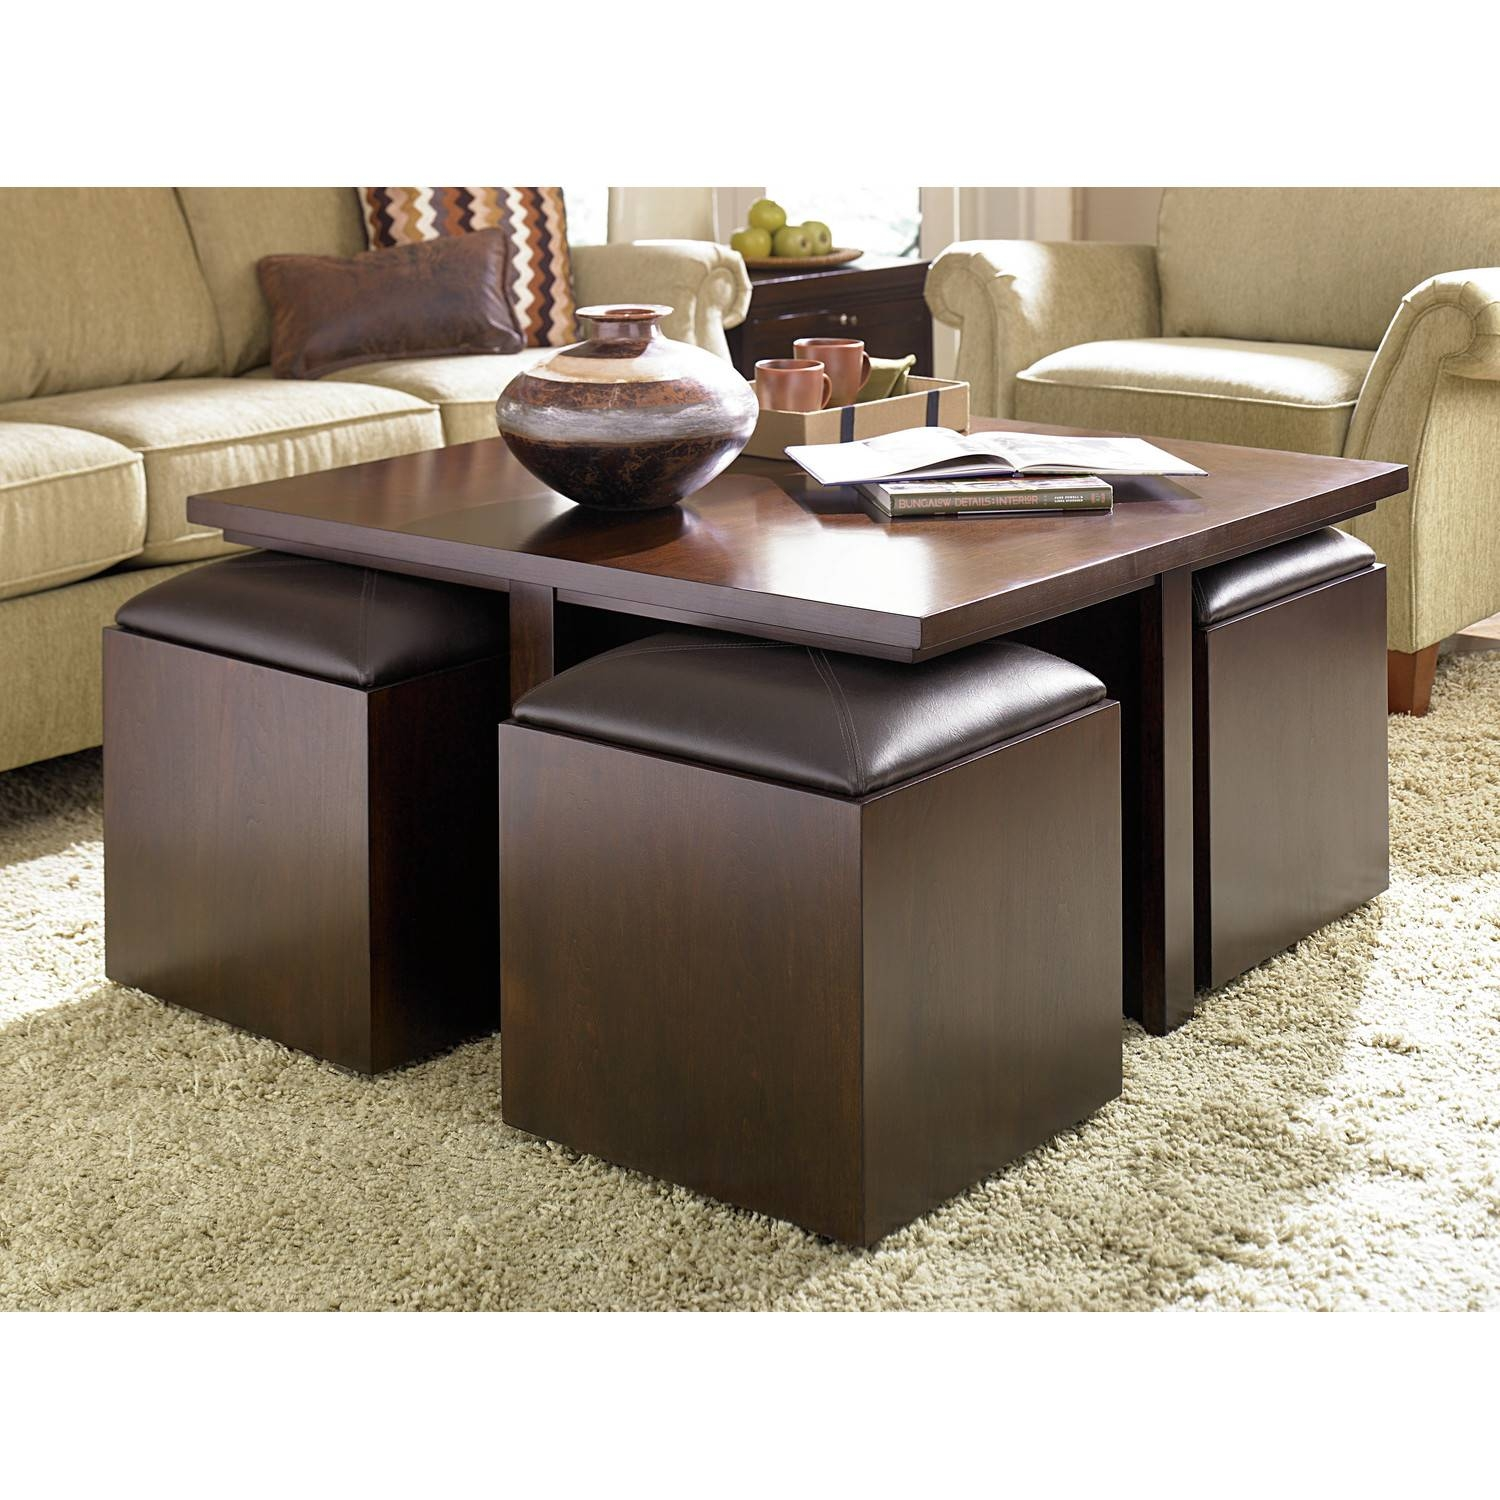 Living Room : Wonderful Ottoman Coffee Table Storage Design Ideas pertaining to Brown Leather Ottoman Coffee Tables With Storages (Image 26 of 30)